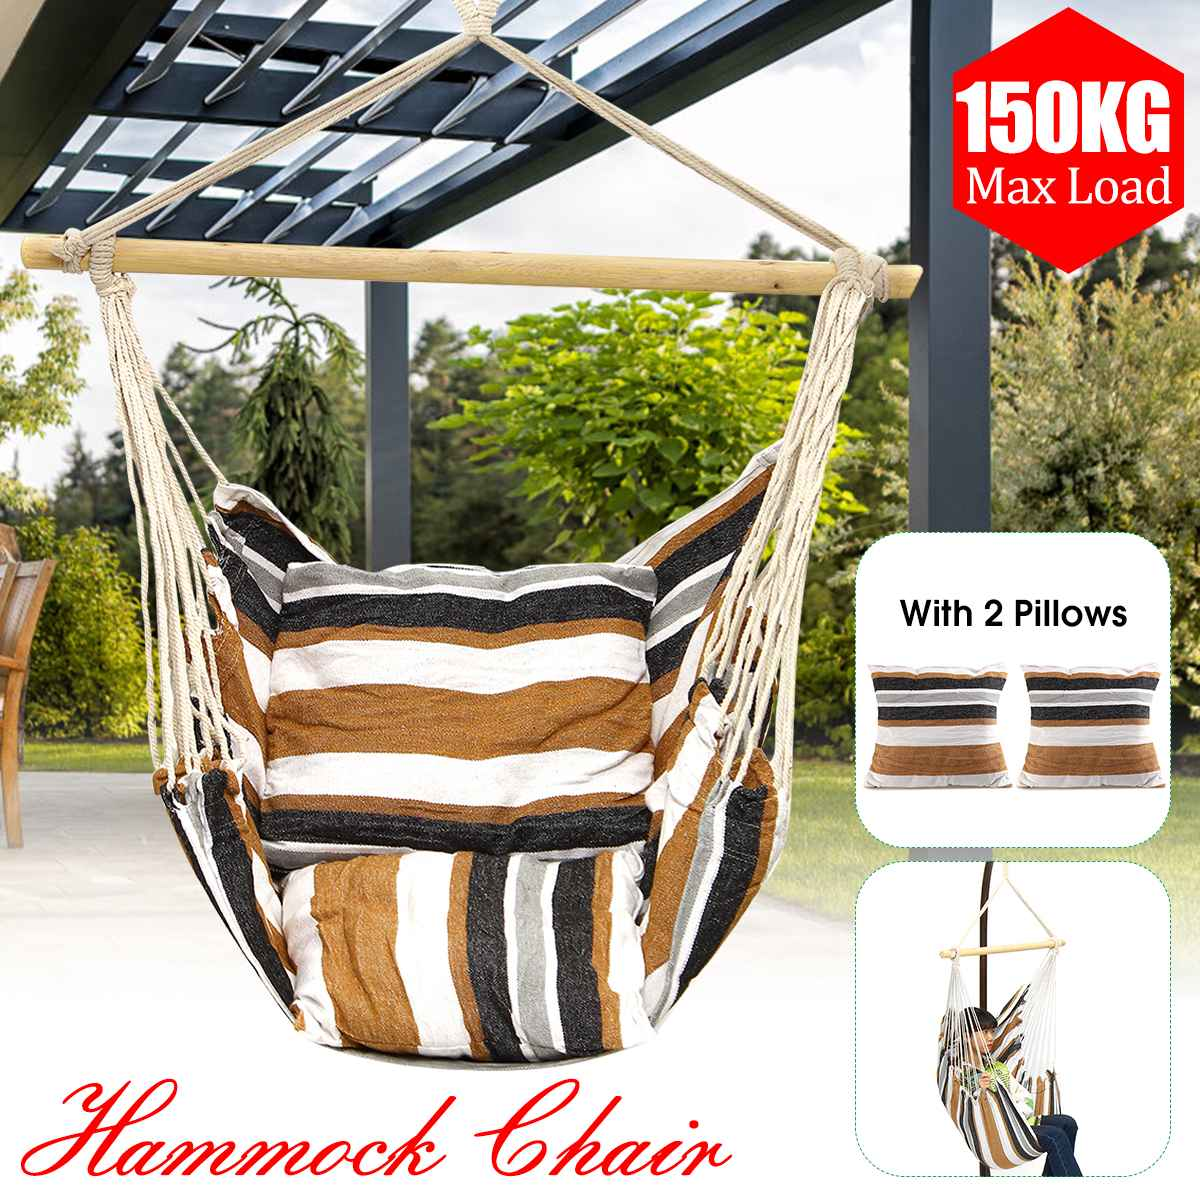 Hammock Hanging Chair Outdoor Indoor Furniture Garden Swing for Adult Children Swinging Chair w/Pillows Wooden Stick